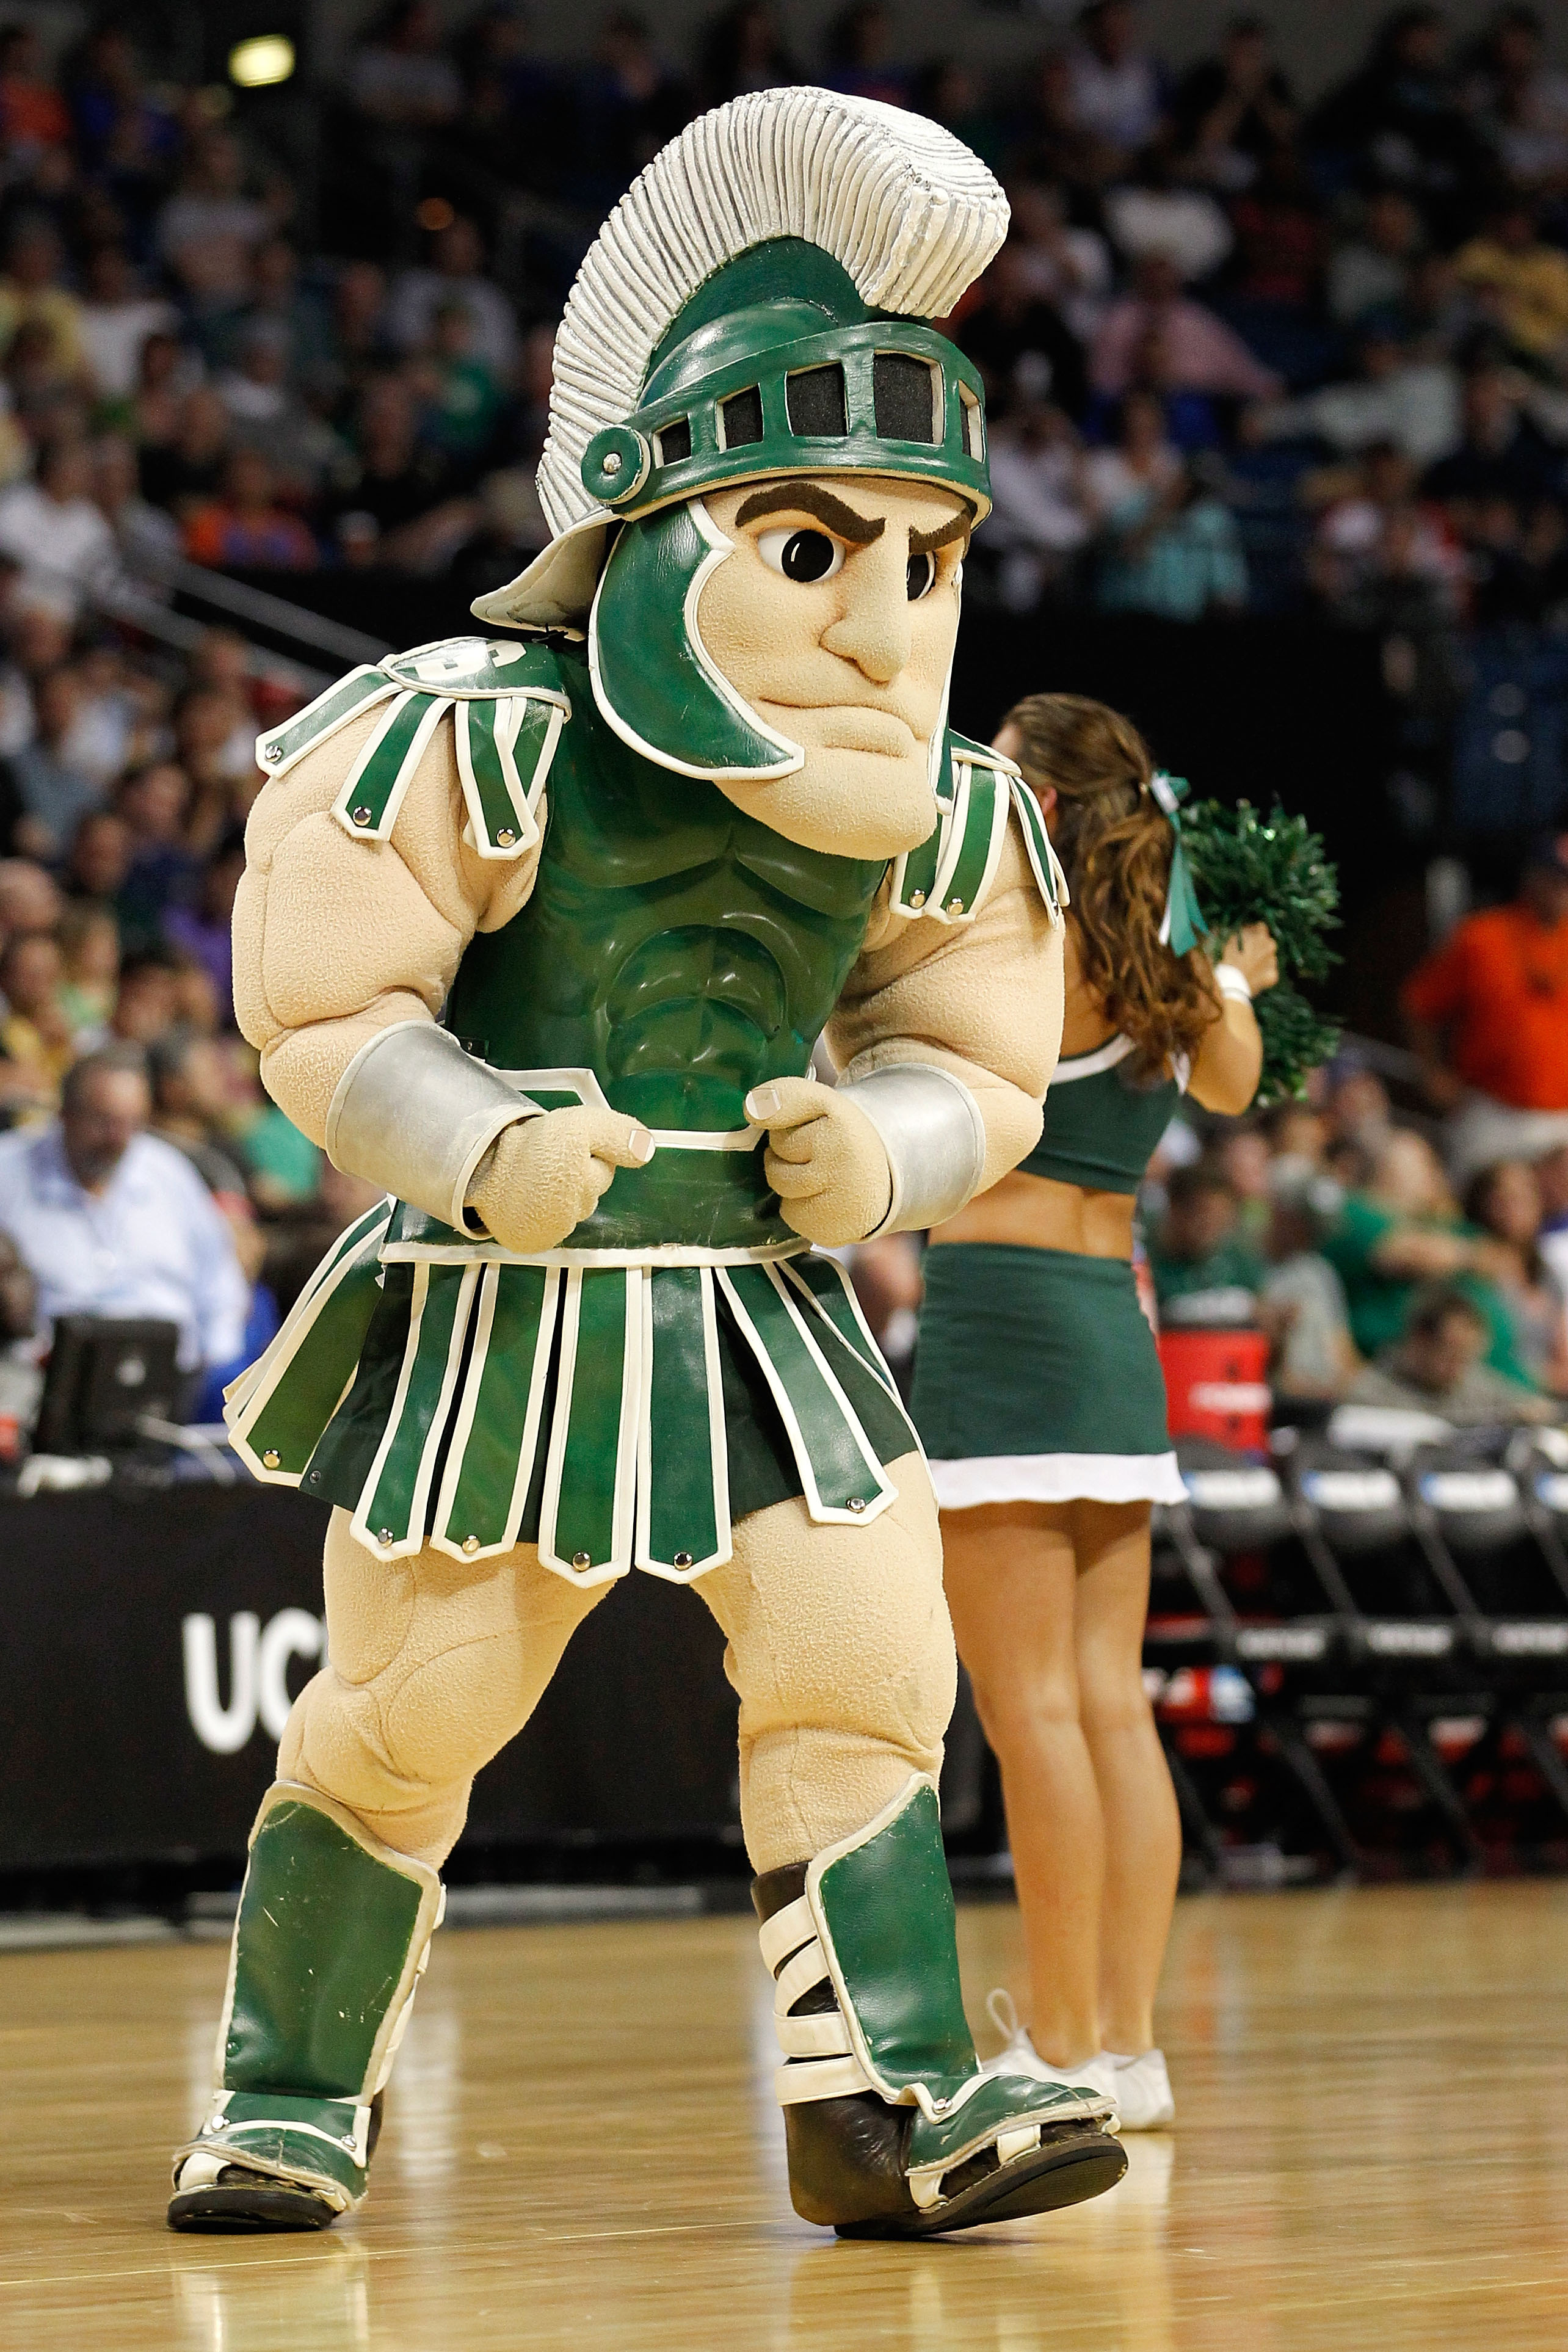 TAMPA, FL - MARCH 17:  Sparty, the mascot for the Michigan State Spartans performs against the UCLA Bruins during the second round of the 2011 NCAA men's basketball tournament at St. Pete Times Forum on March 17, 2011 in Tampa, Florida.  (Photo by J. Meri